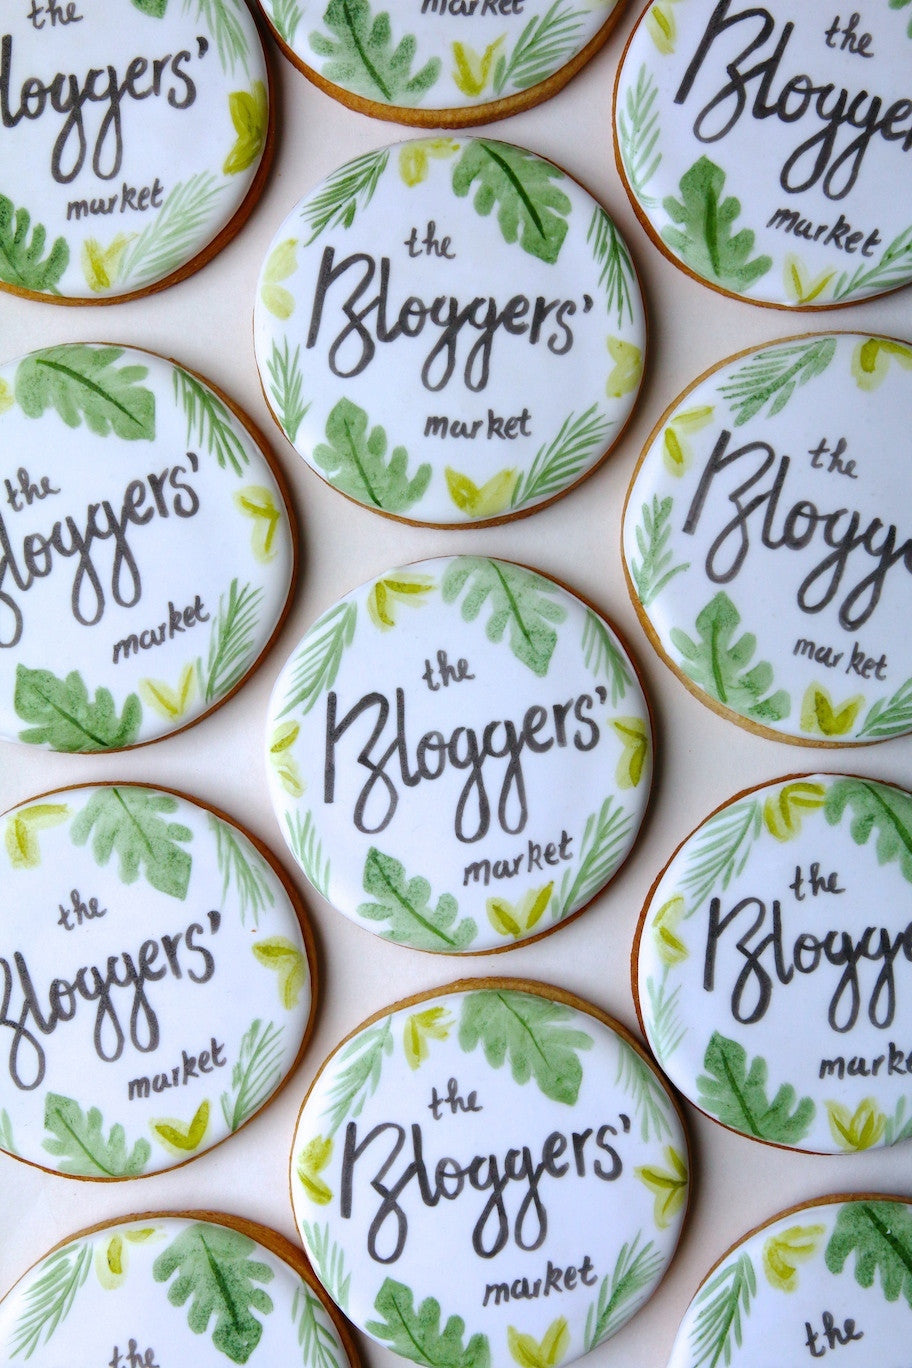 Bloggers Market Branded Biscuits